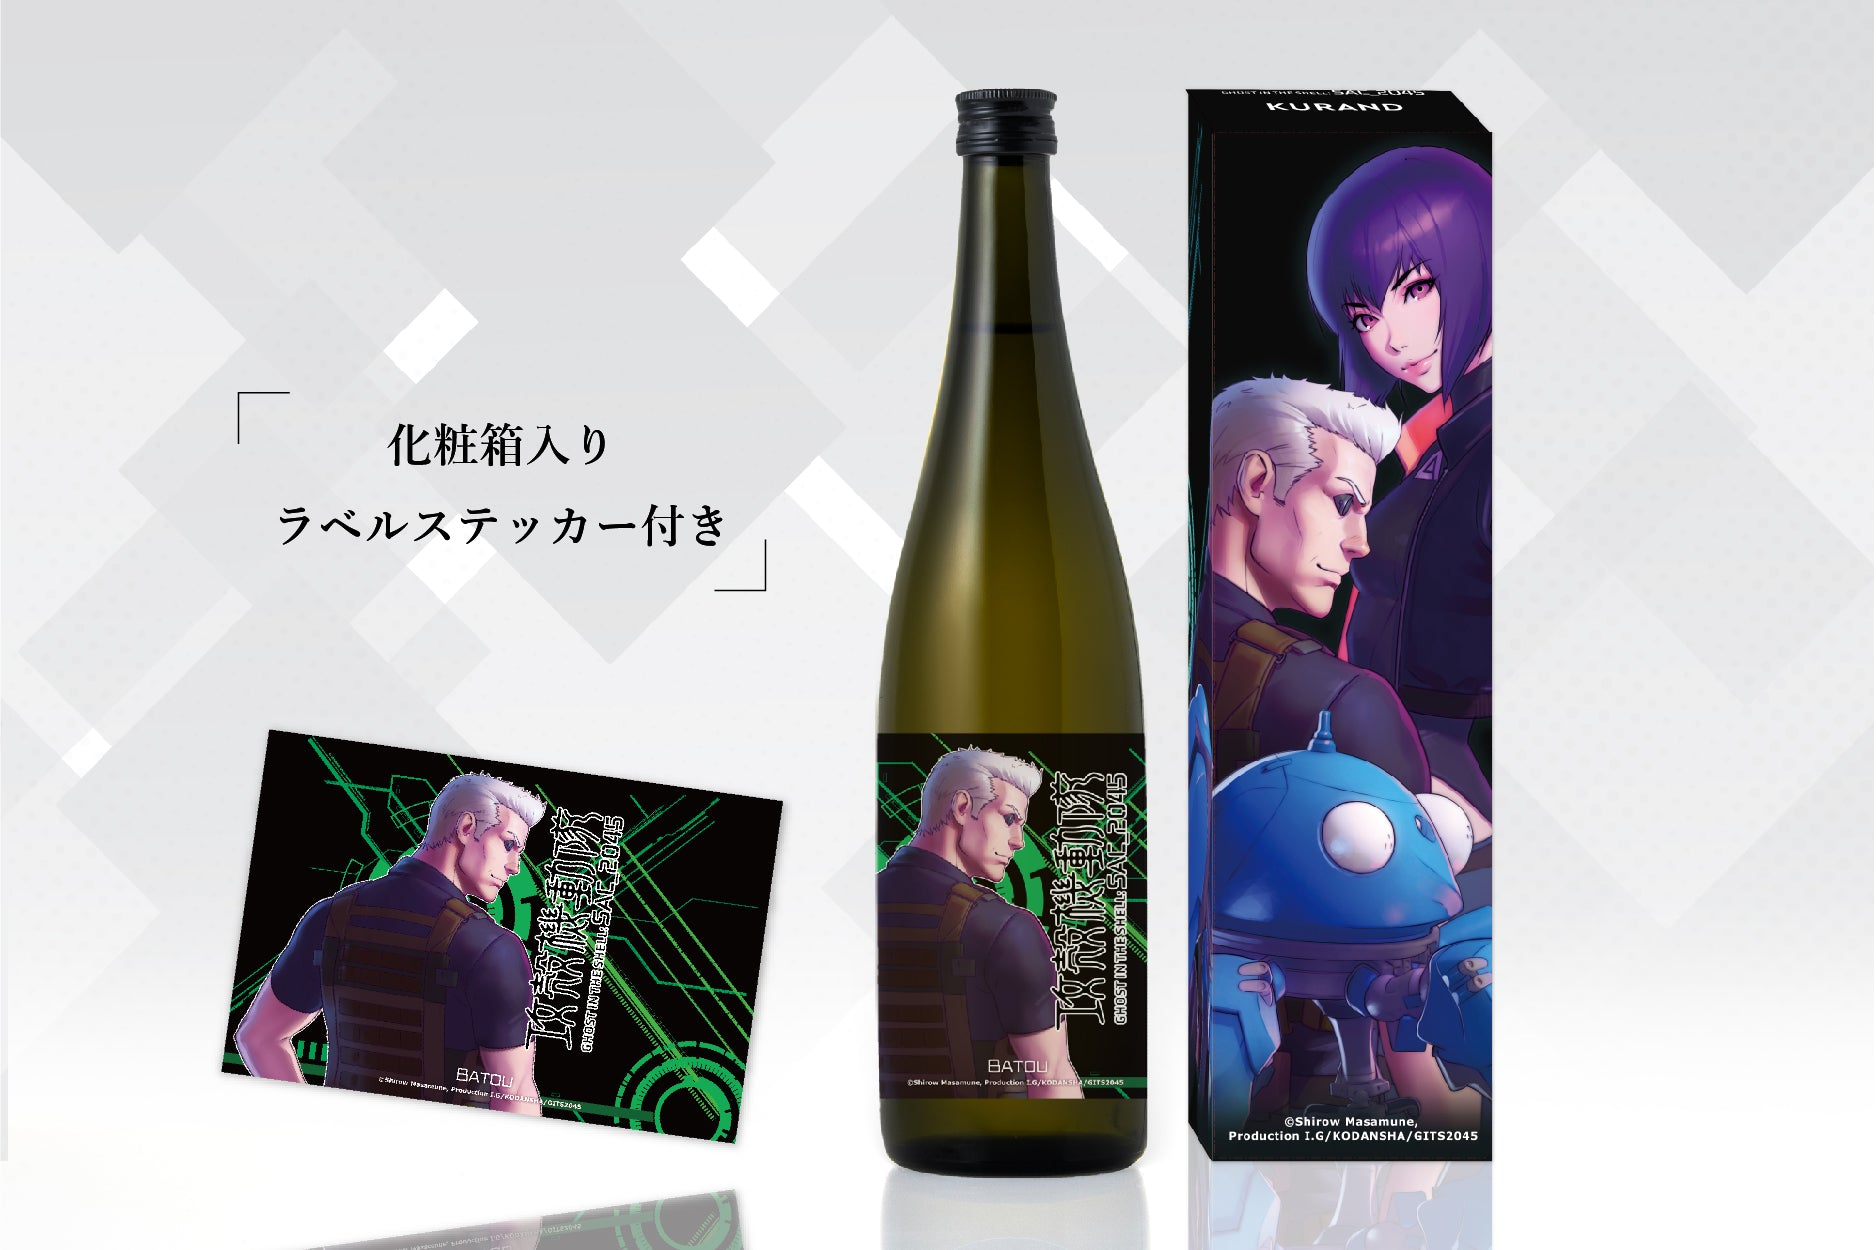 GHOST IN THE SHELL: SAC_2045 - バトーver. -